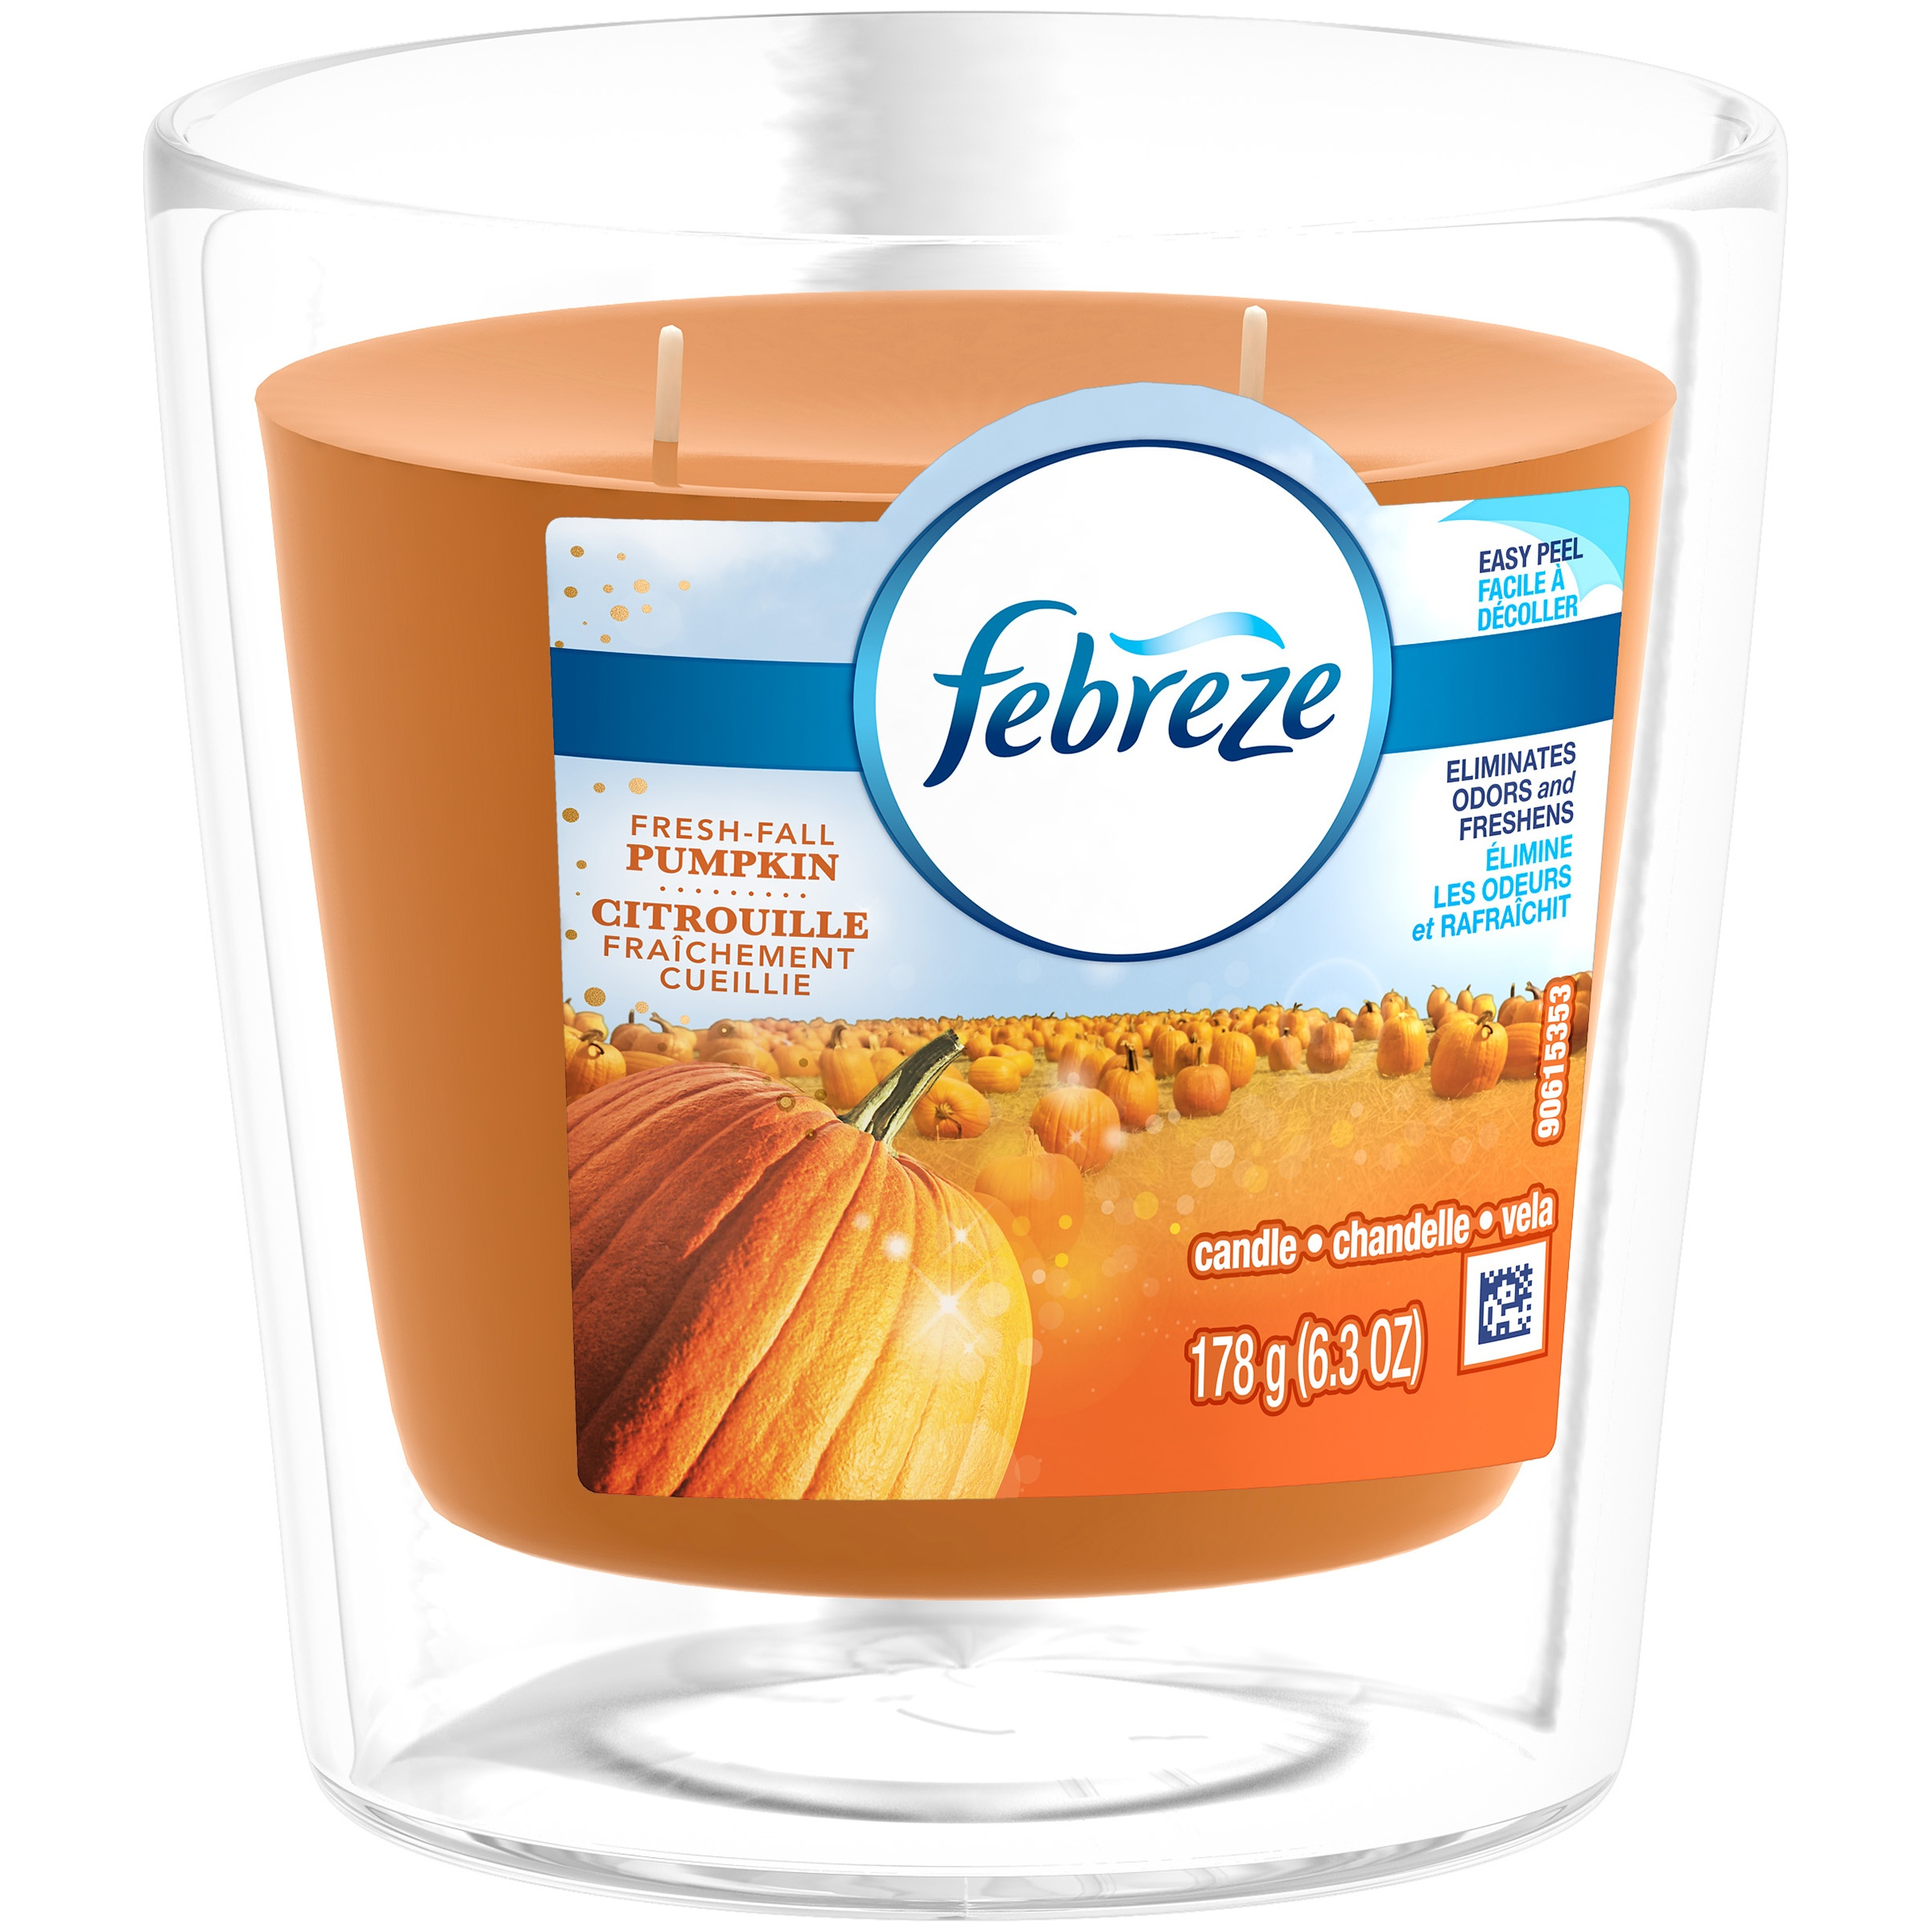 <mark>Febreze</mark> <mark>Candle</mark>, Fresh-Fall Pumpkin, 6.3 oz